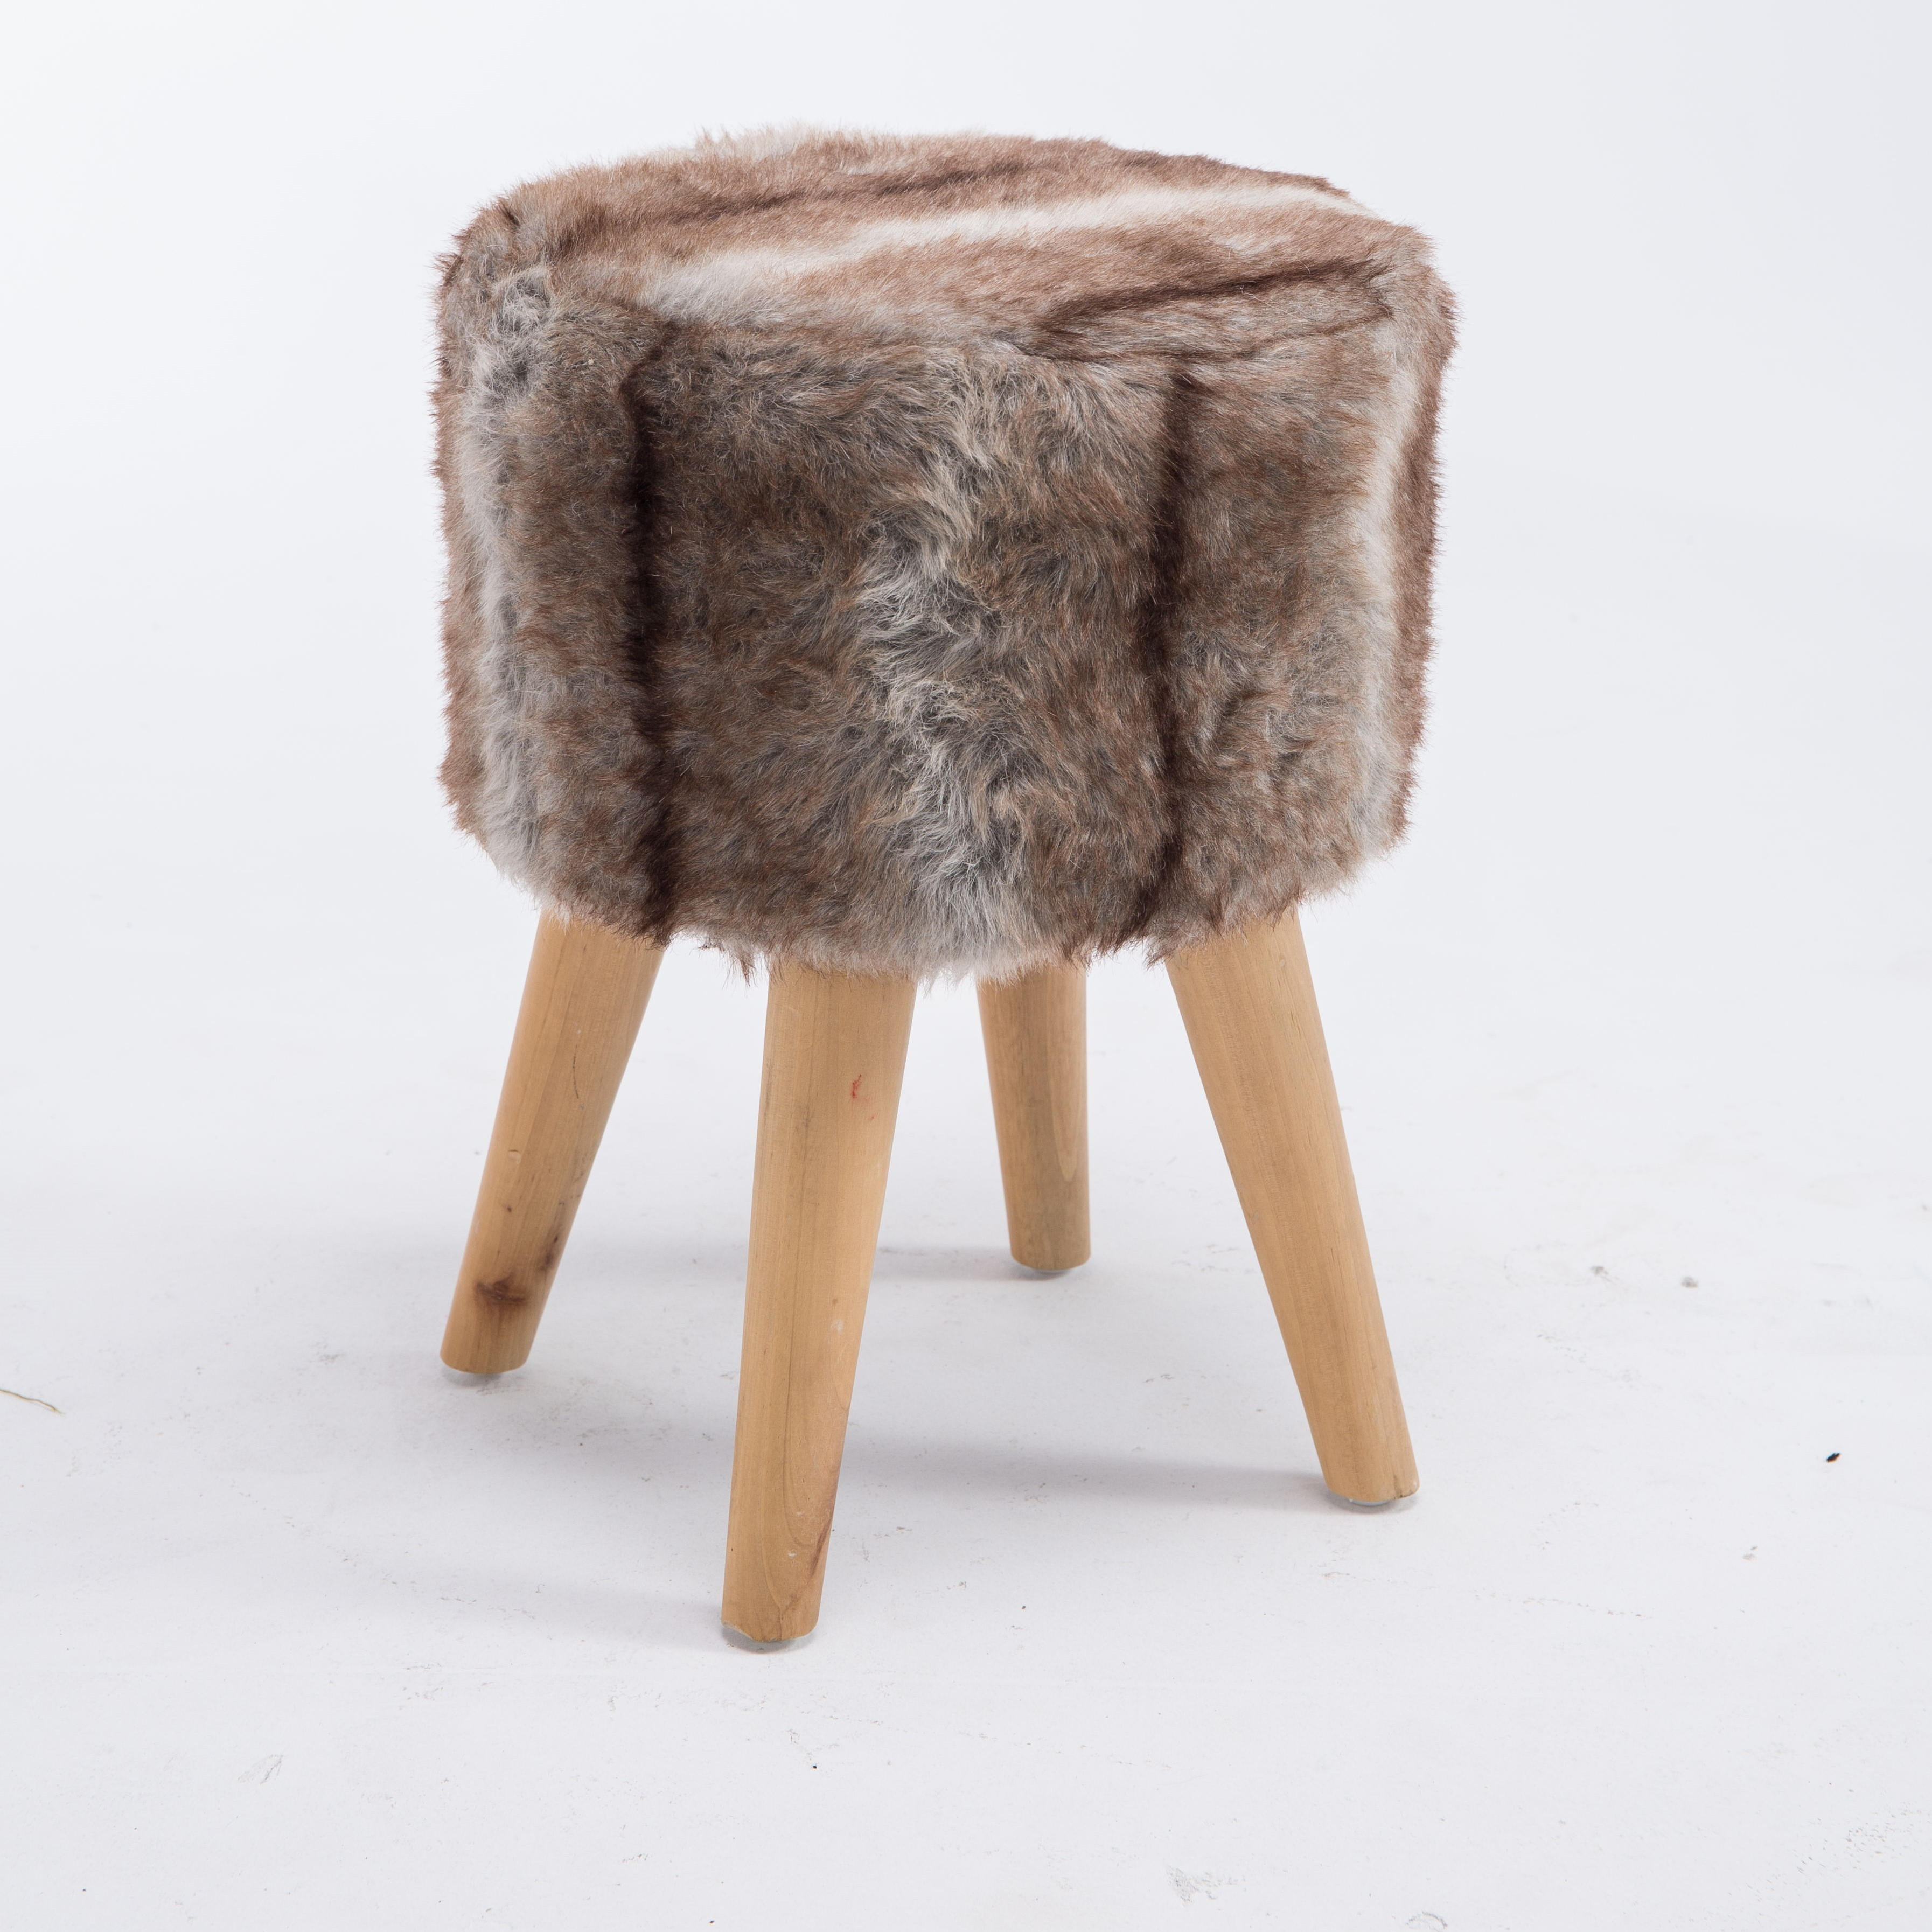 Strange Antique Style Faux Fur Fabric Wooden Stool Buy Wooden Stool Faux Fur Wooden Stool Antique Wooden Stool Product On Alibaba Com Cjindustries Chair Design For Home Cjindustriesco